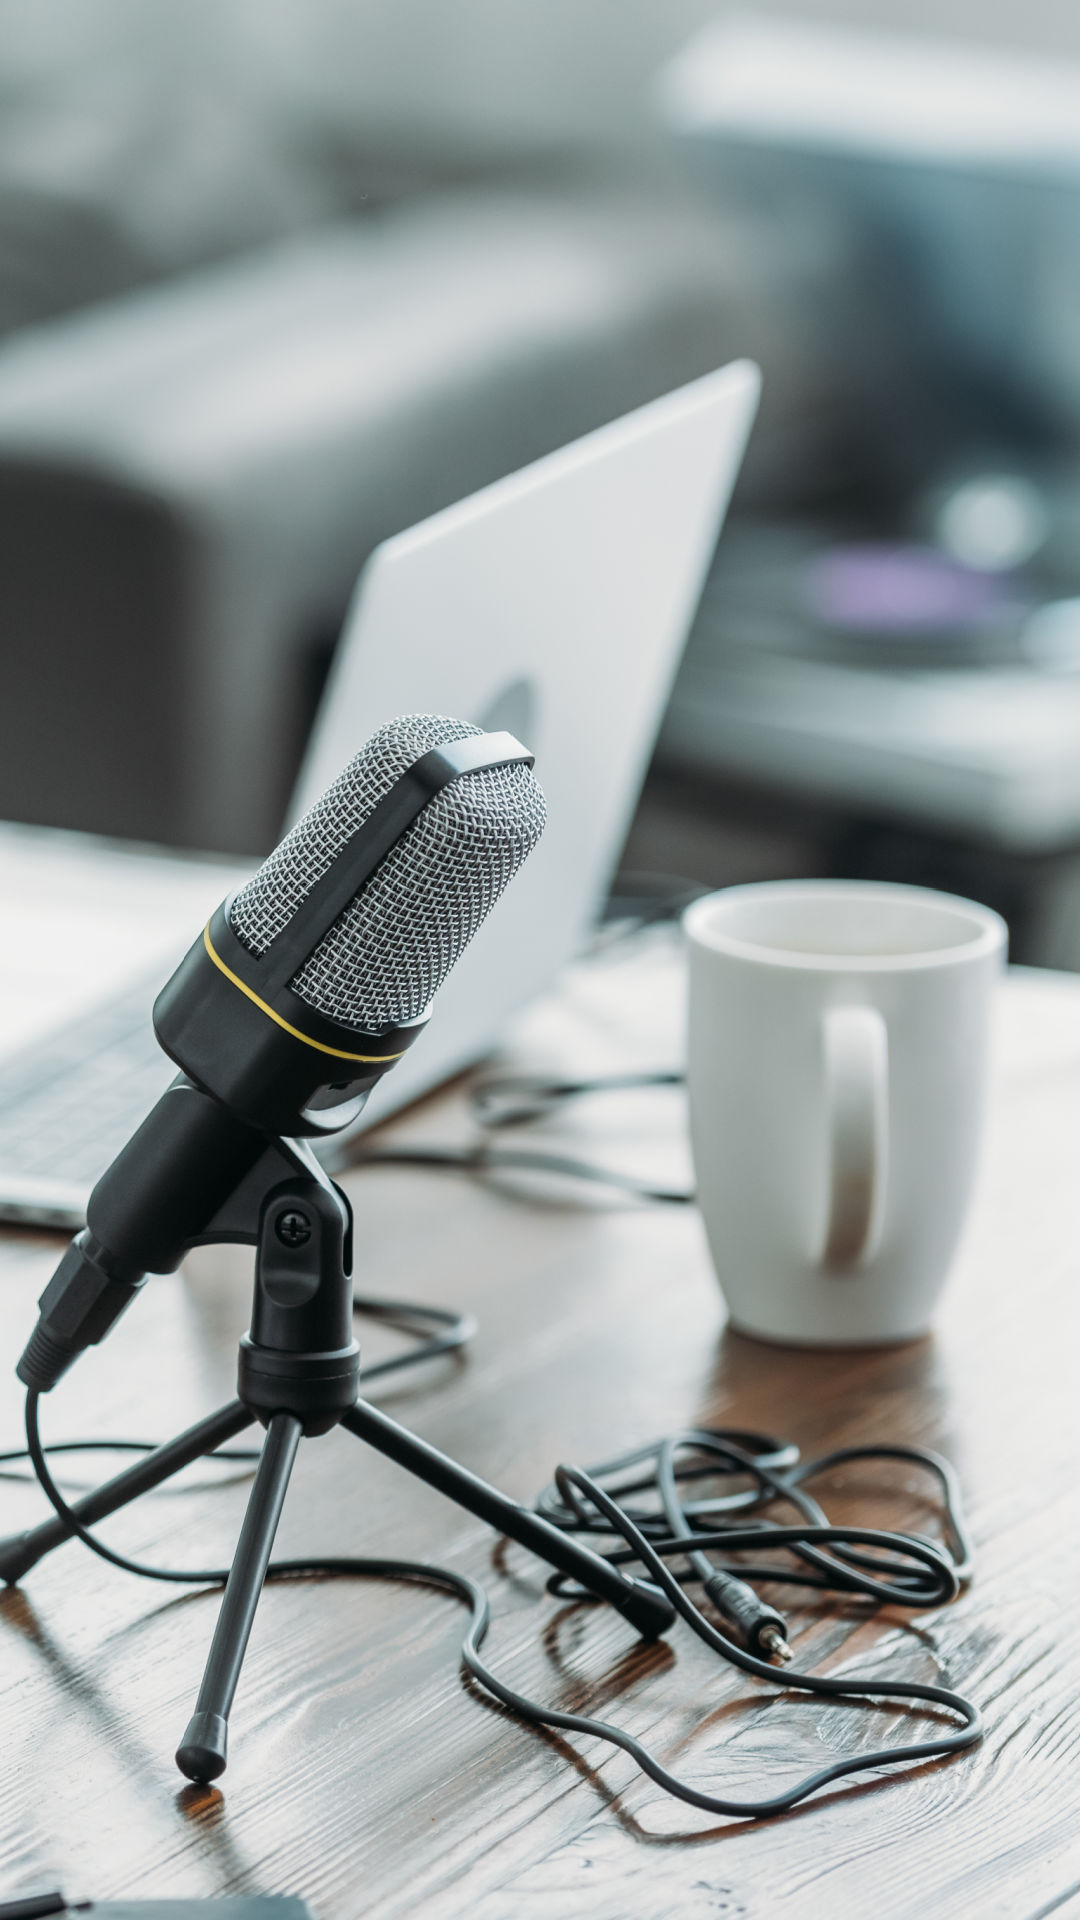 mircophone and coffee cup recording podcast IBLP